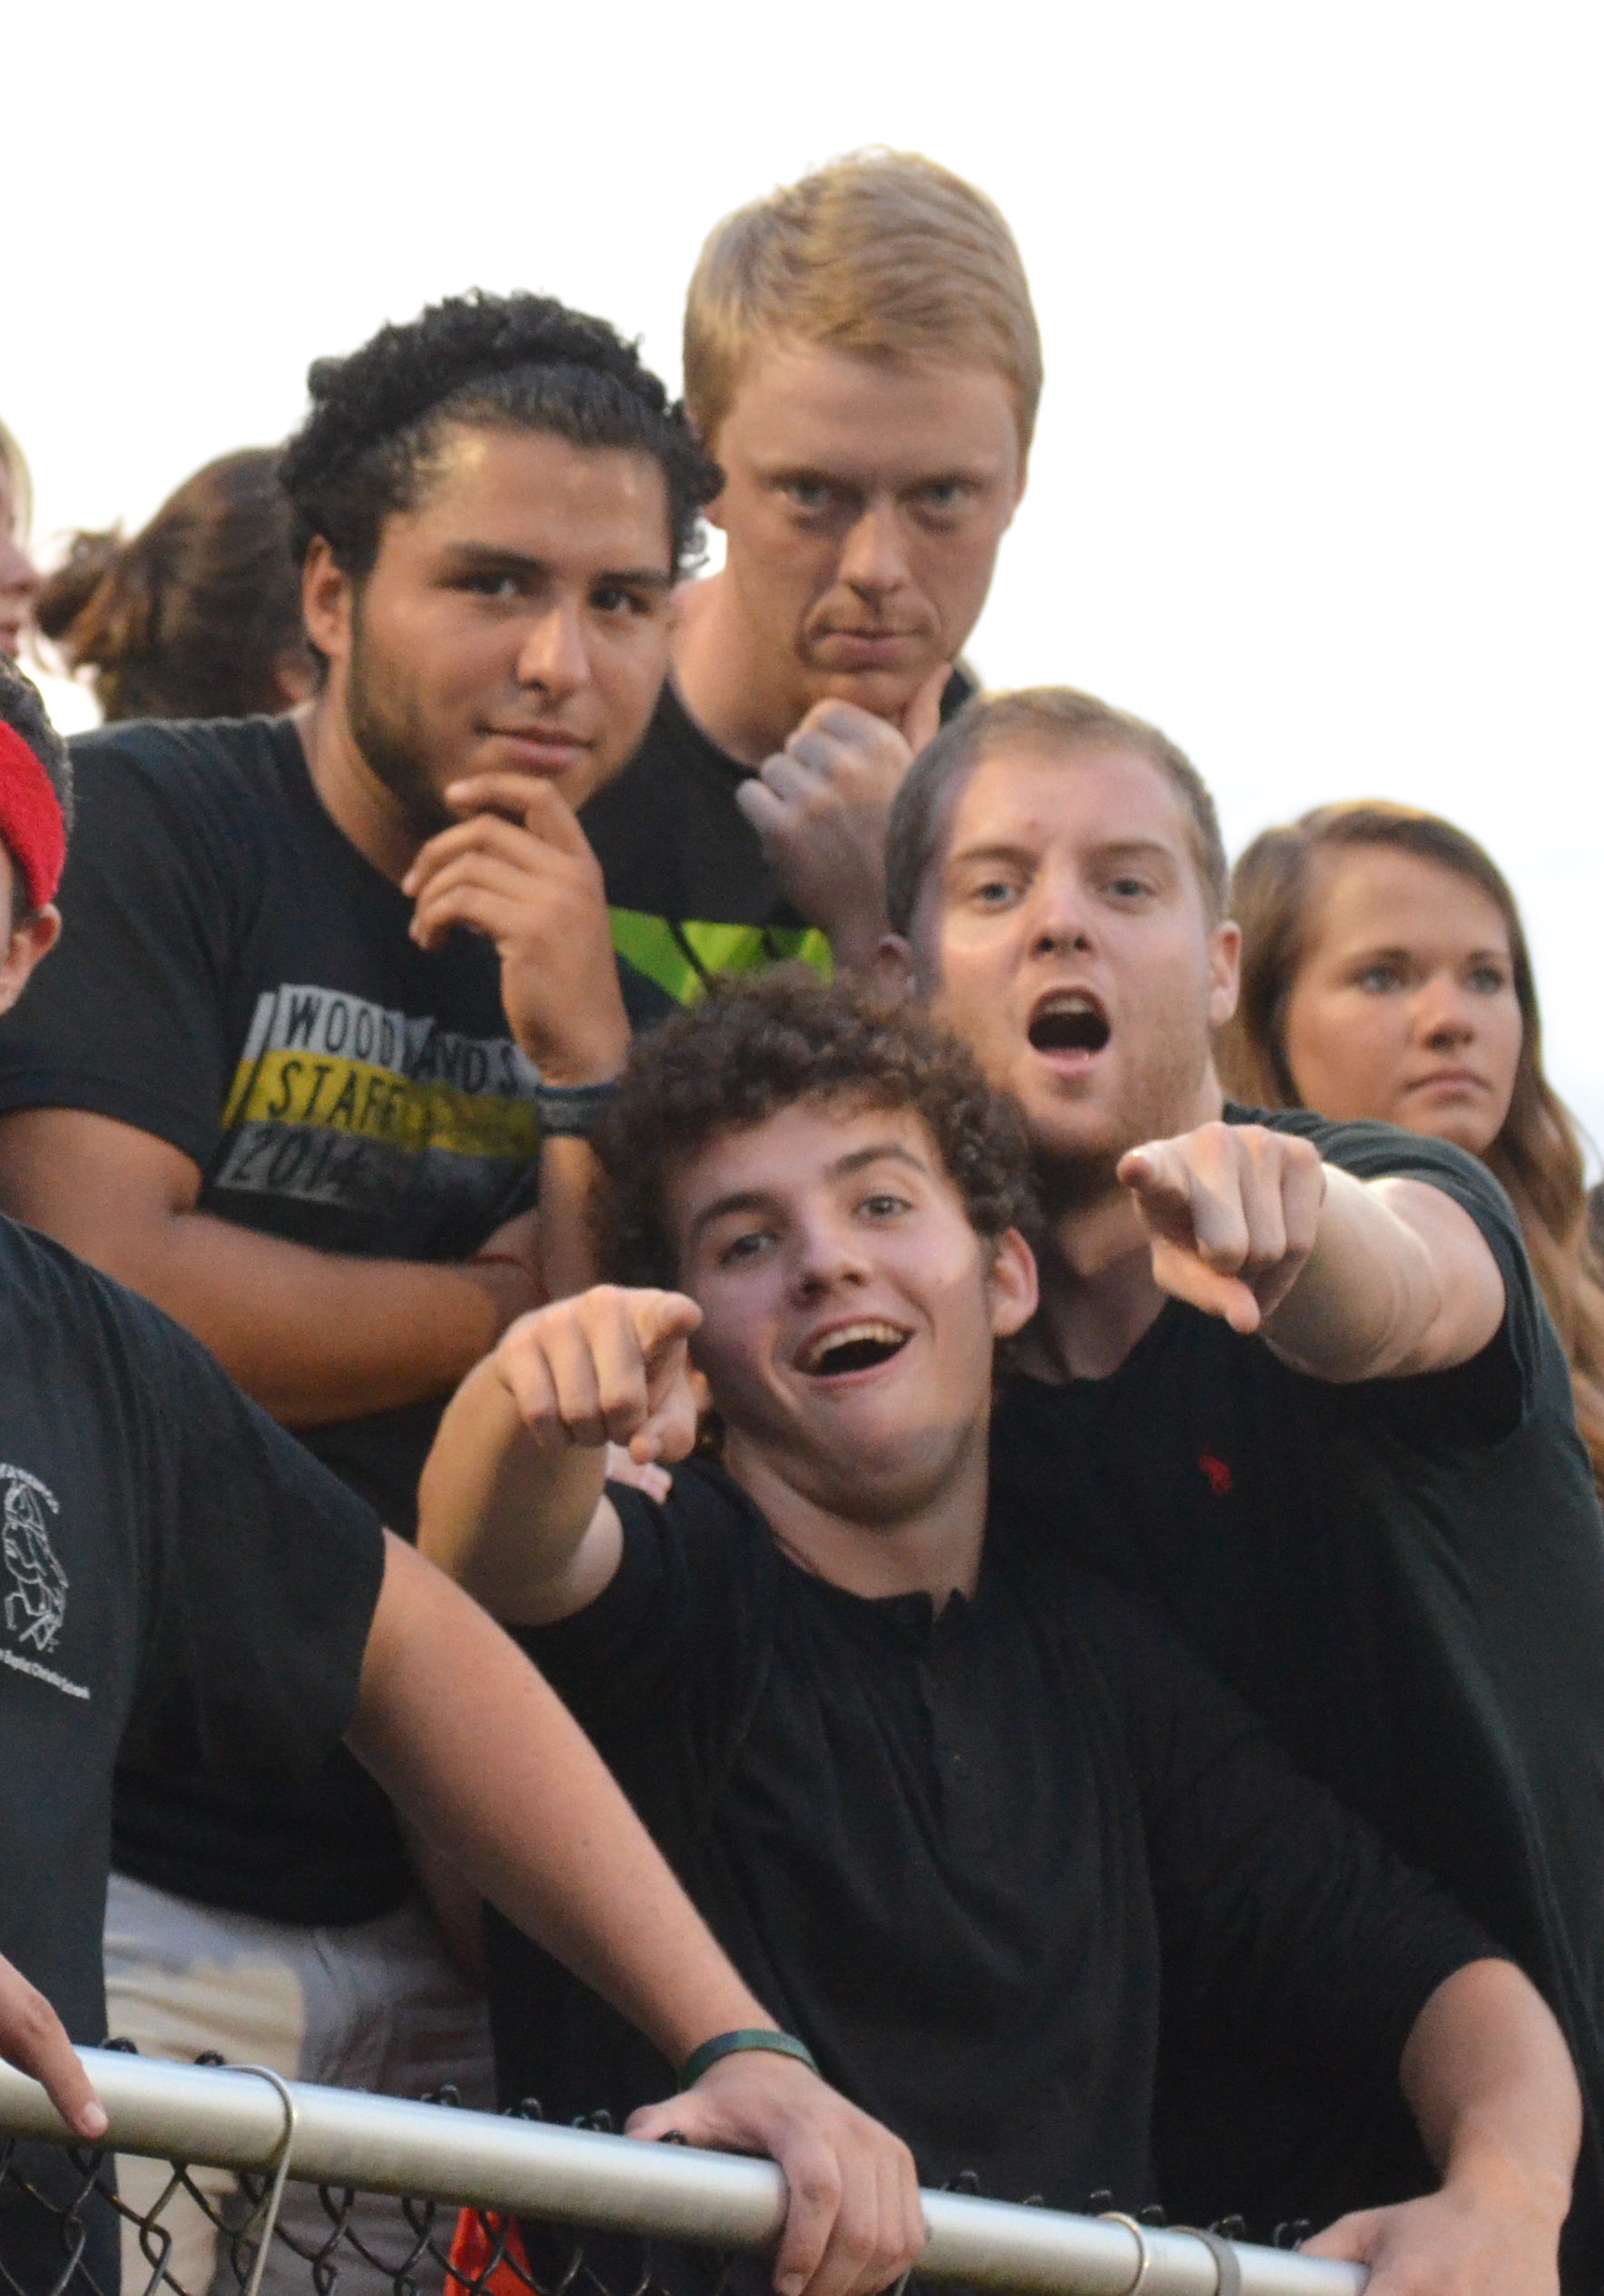 A few select students make sure they have their game faces on